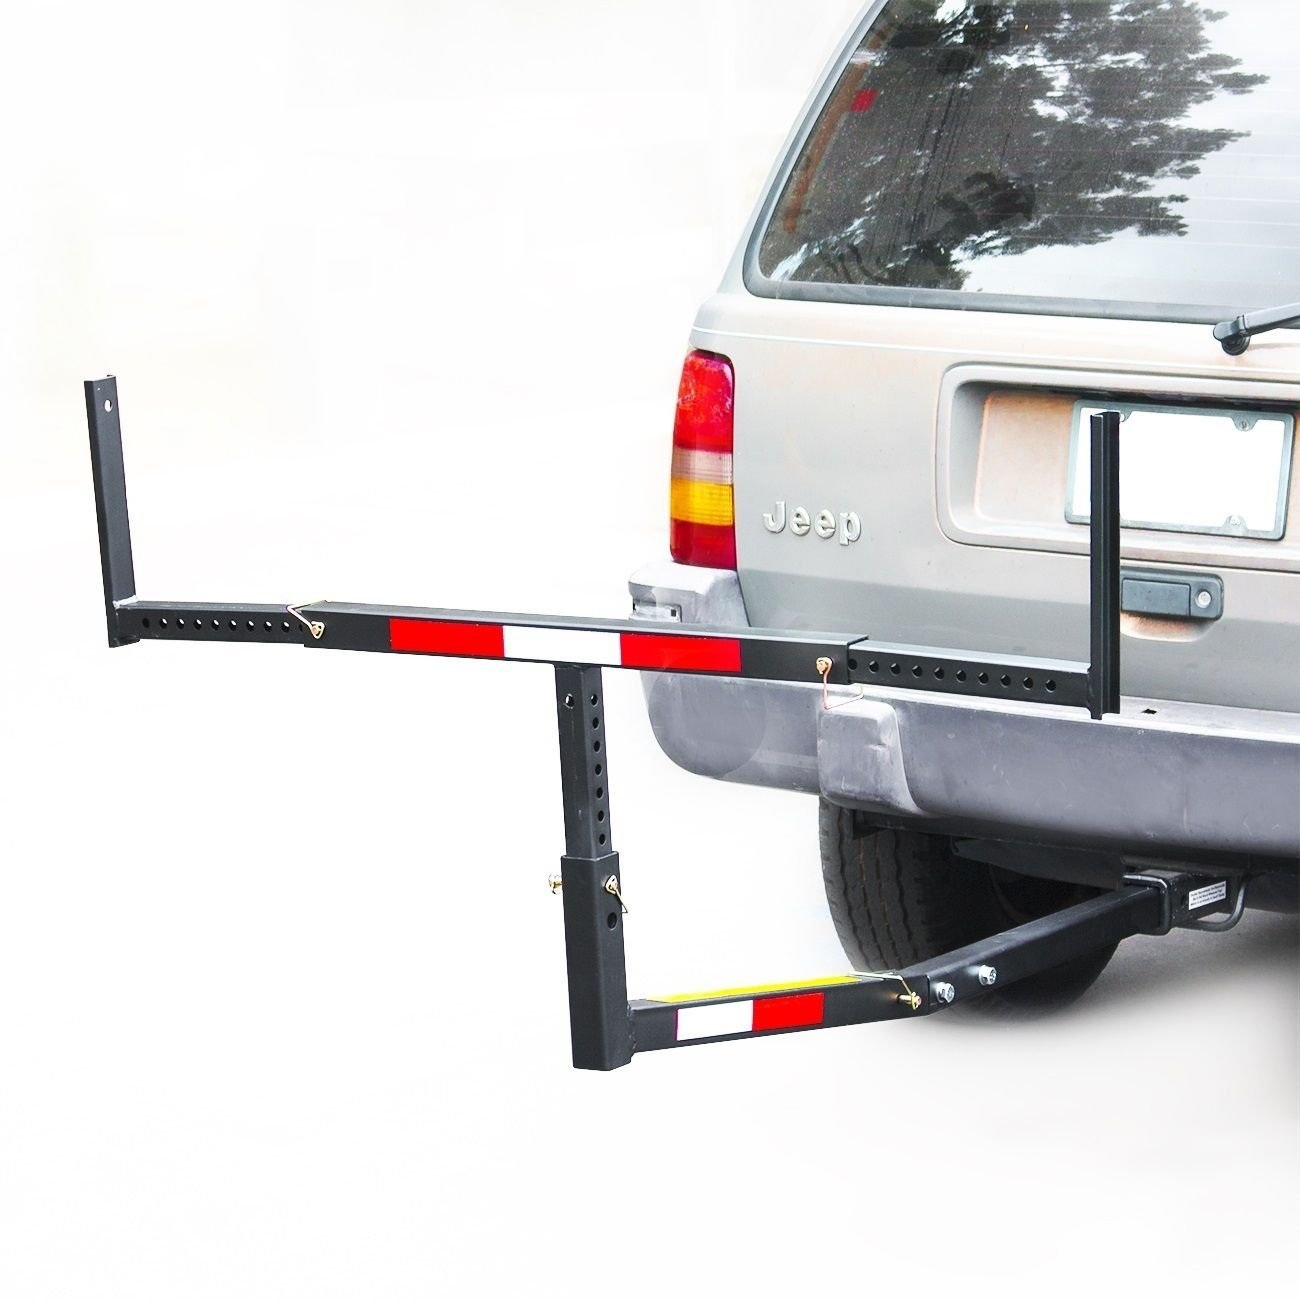 Ego Pick Up Truck Bed Hitch Extender Extension Rack